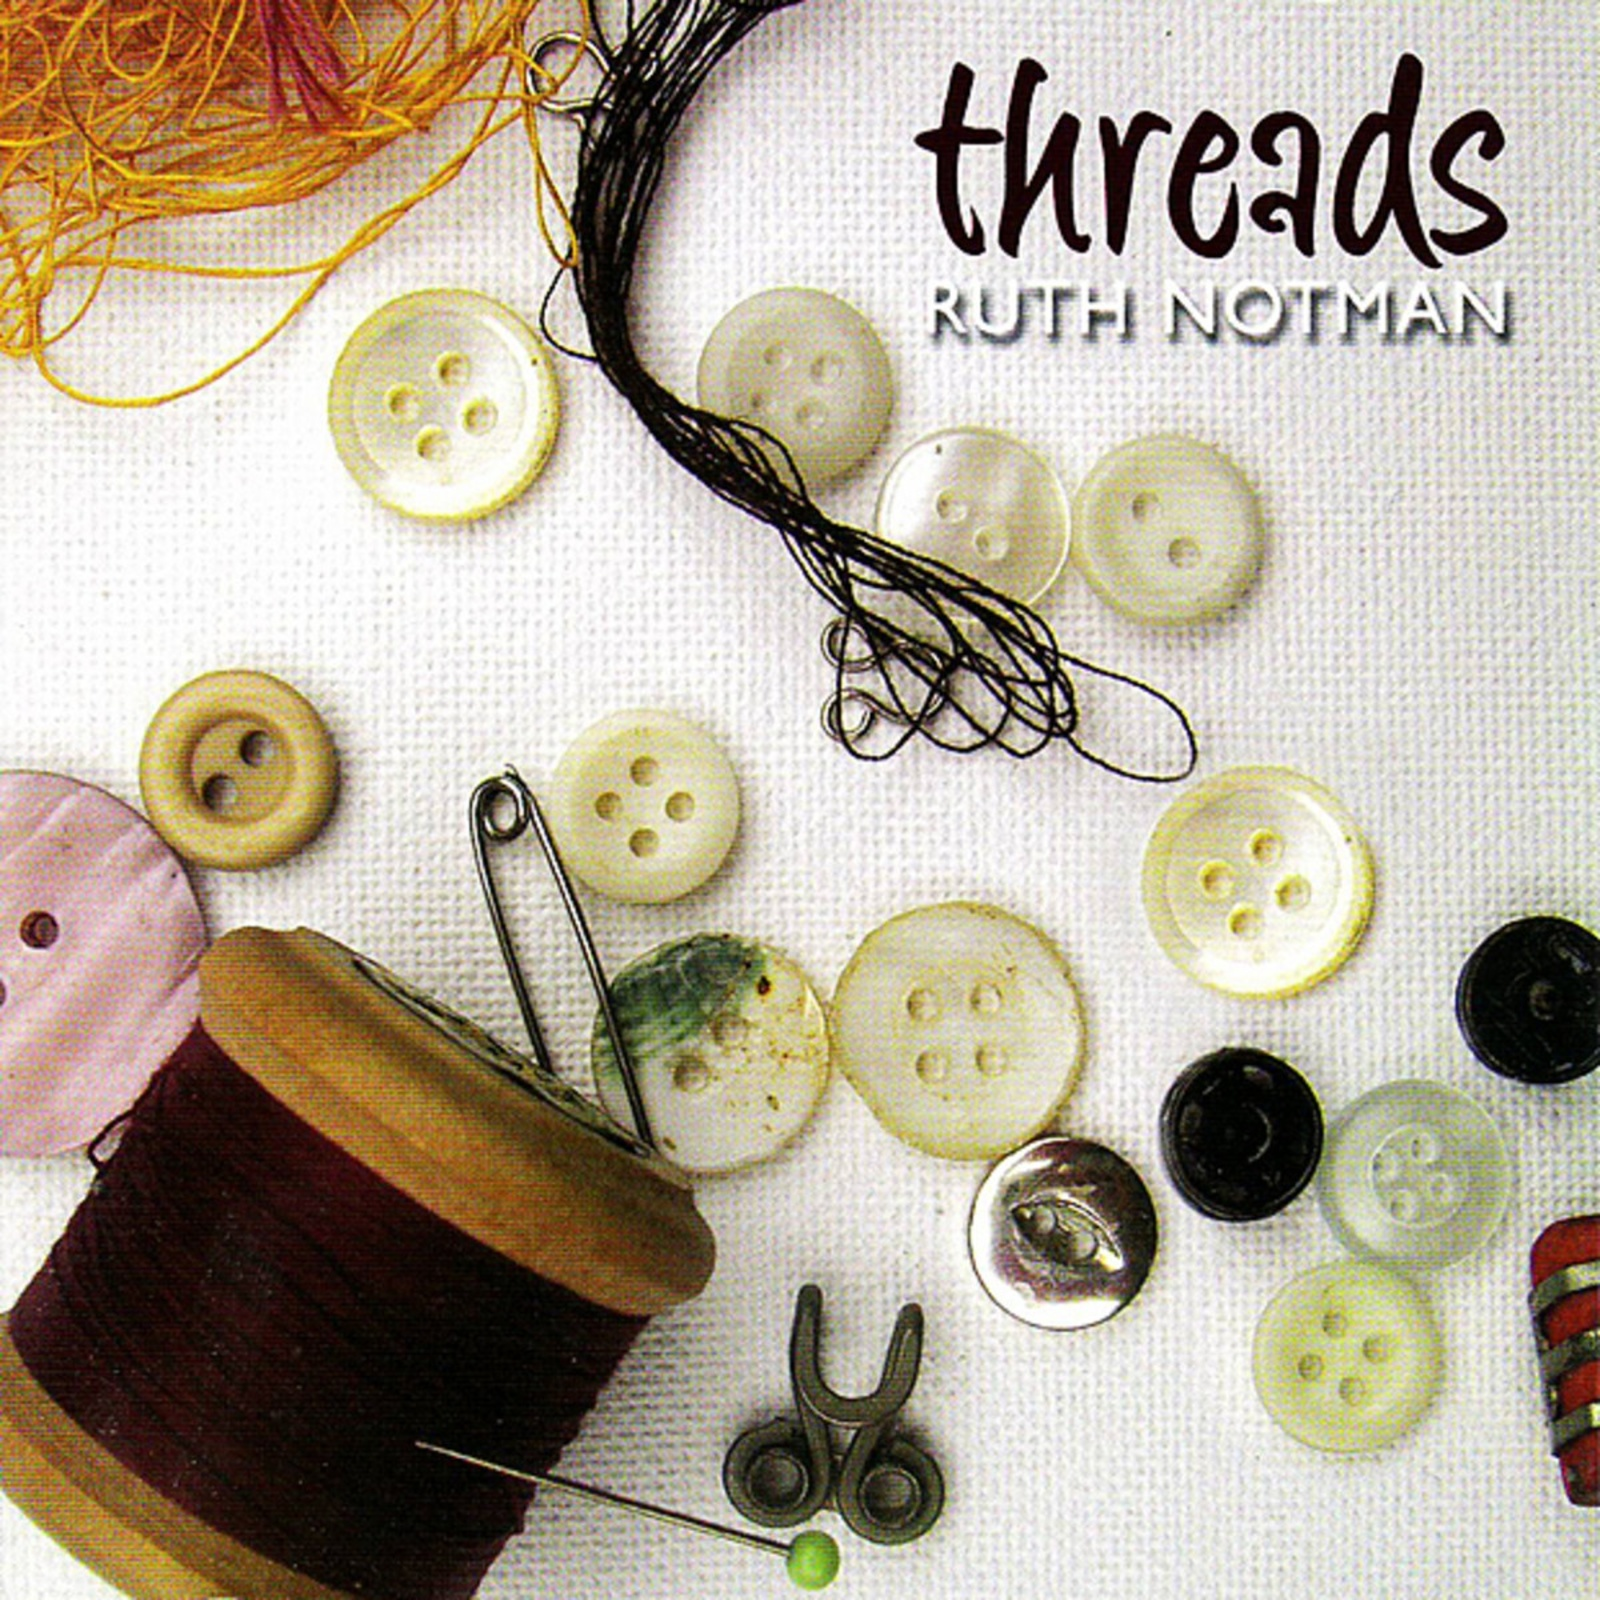 Threads by Ruth Notman a great folk album